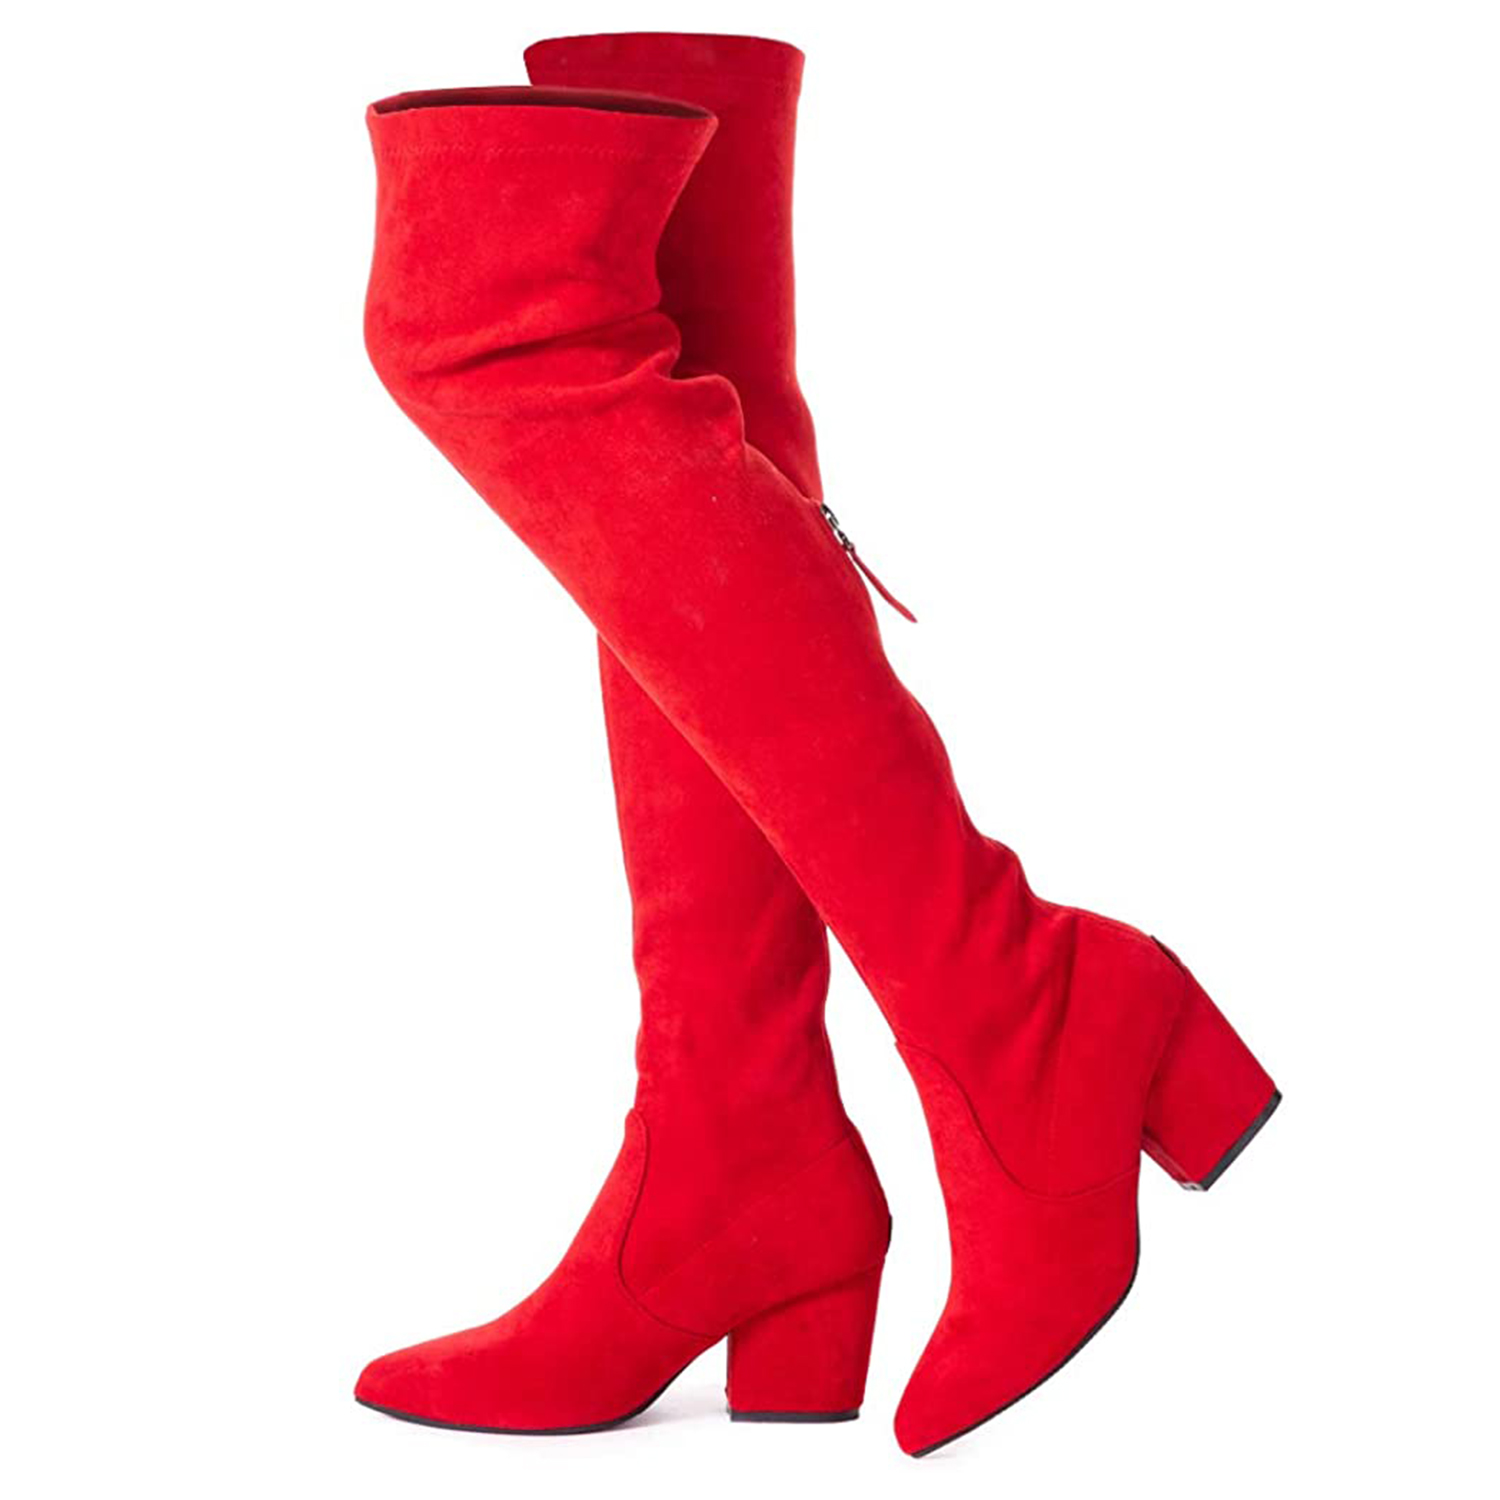 N.N.G Women Boots Winter Over Knee Long Boots